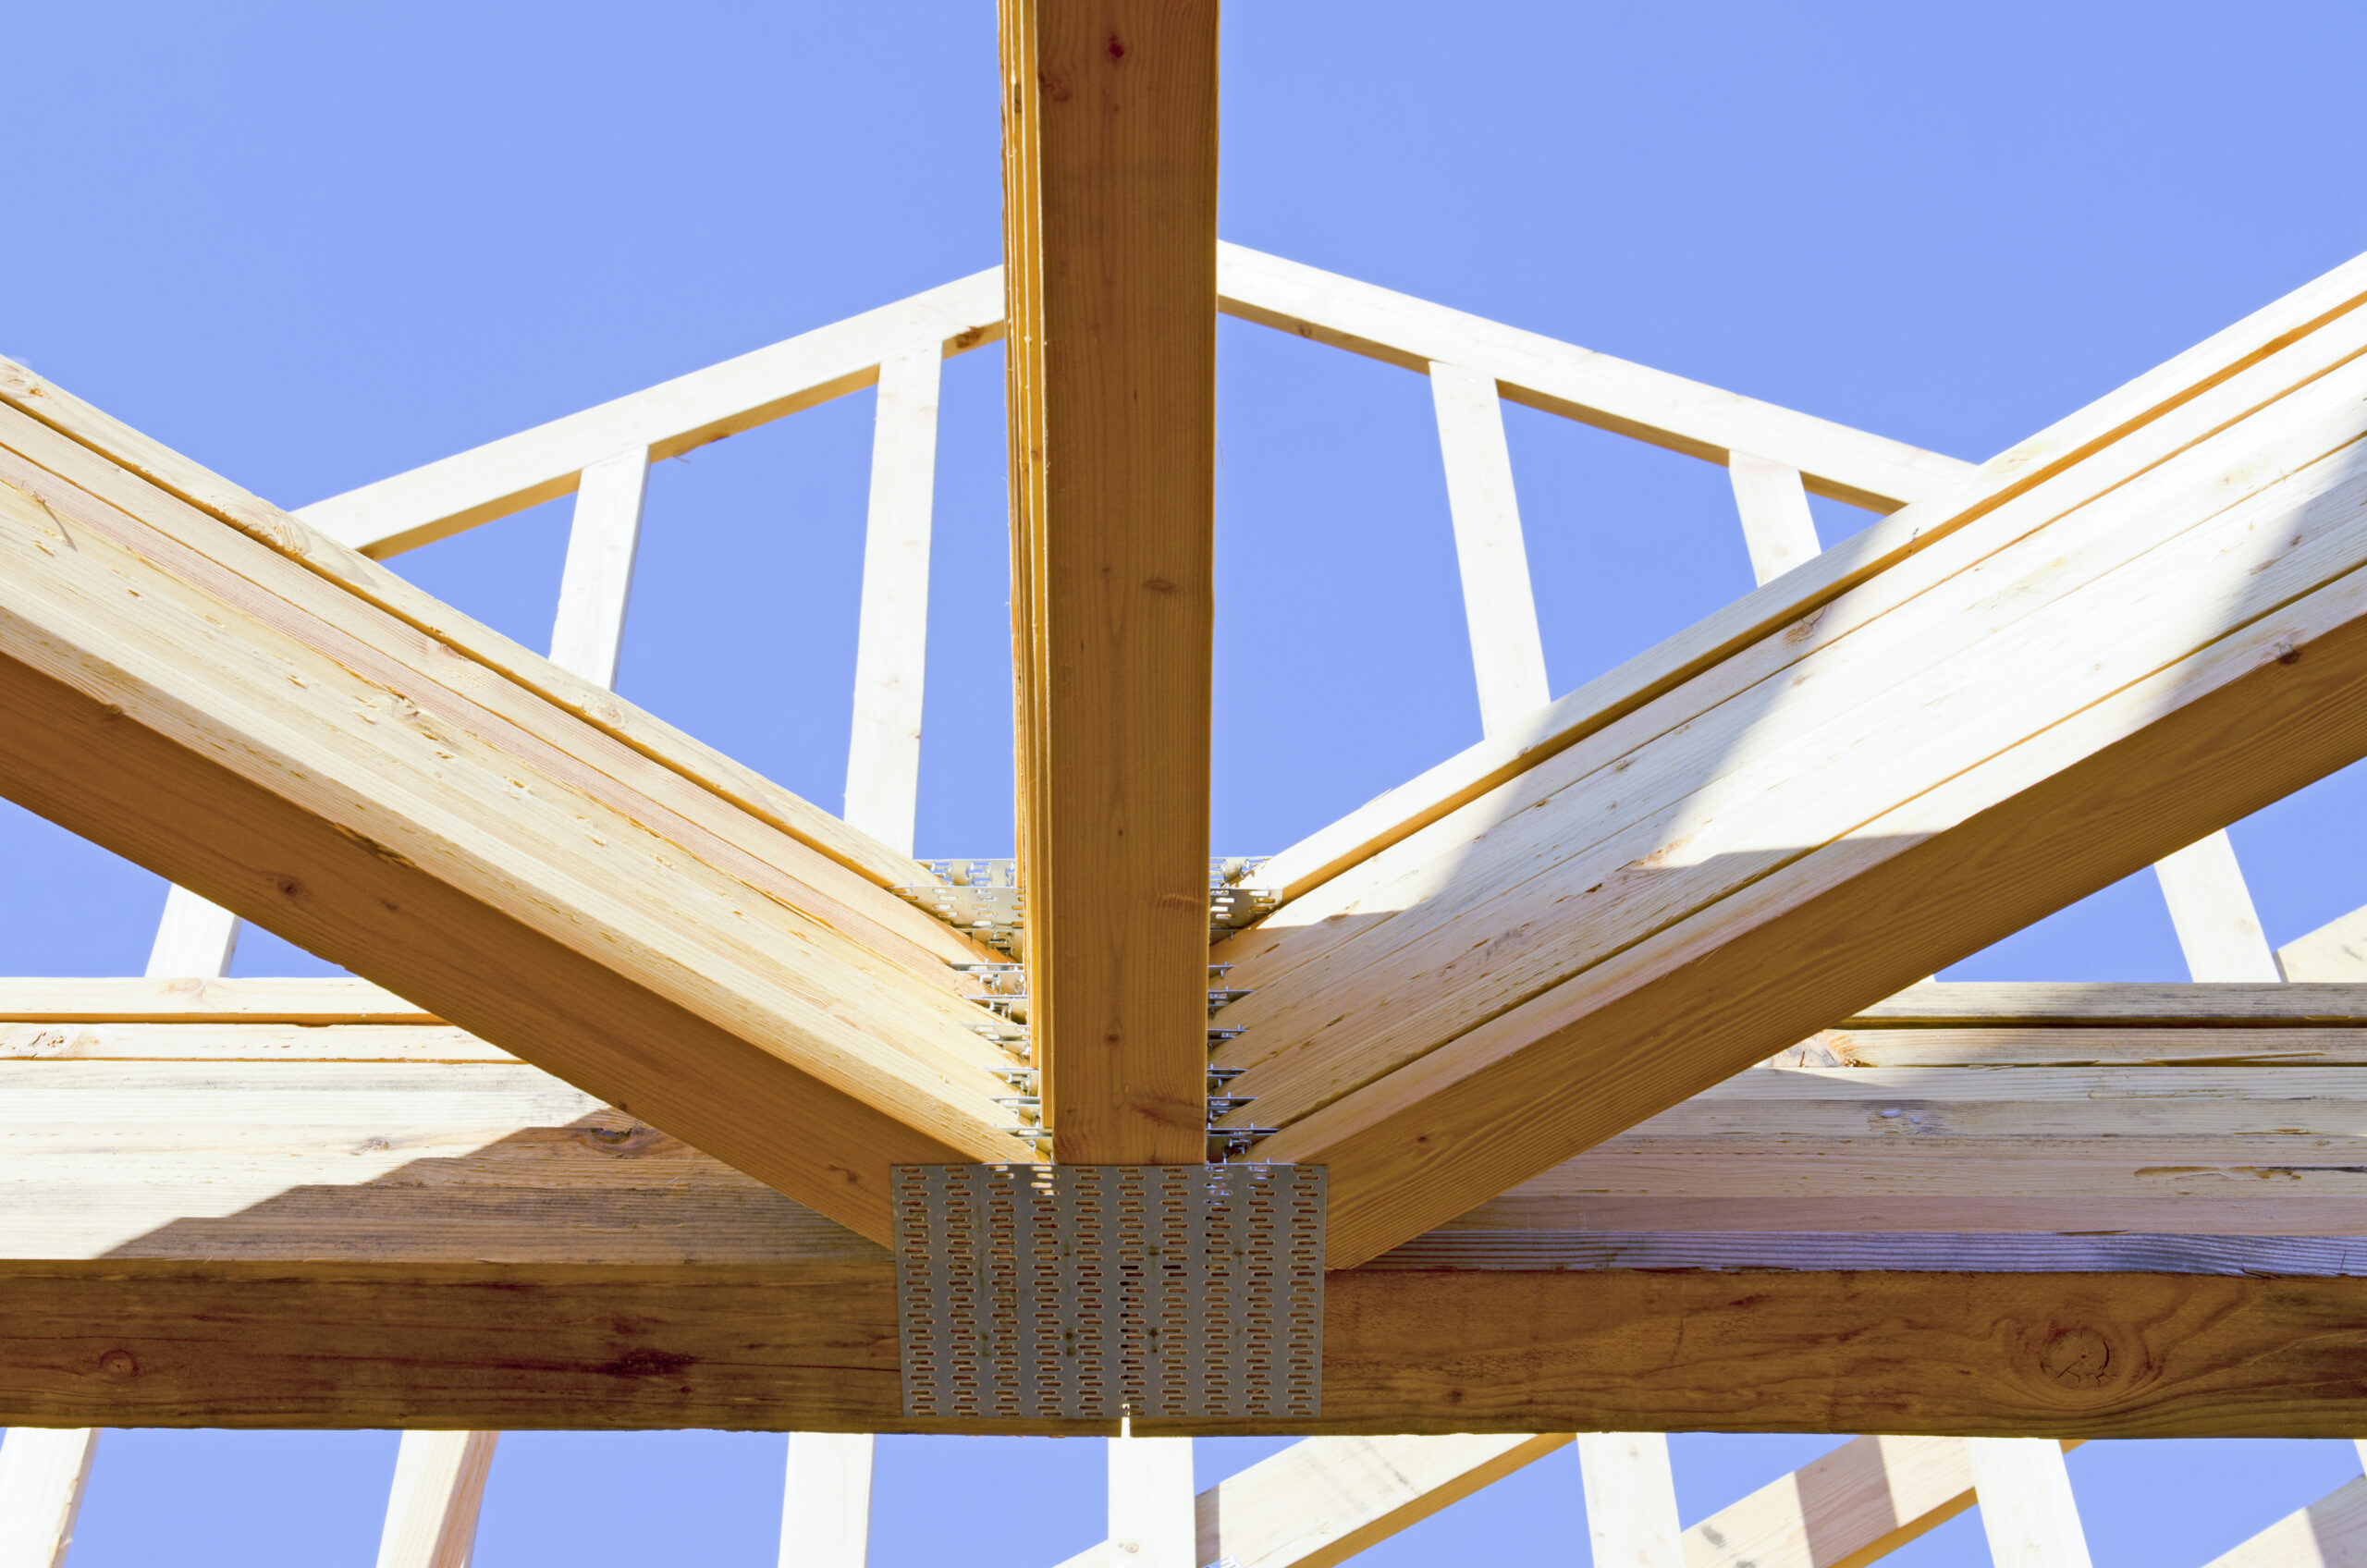 Mass Timber Shines in a Carbon-Friendly World